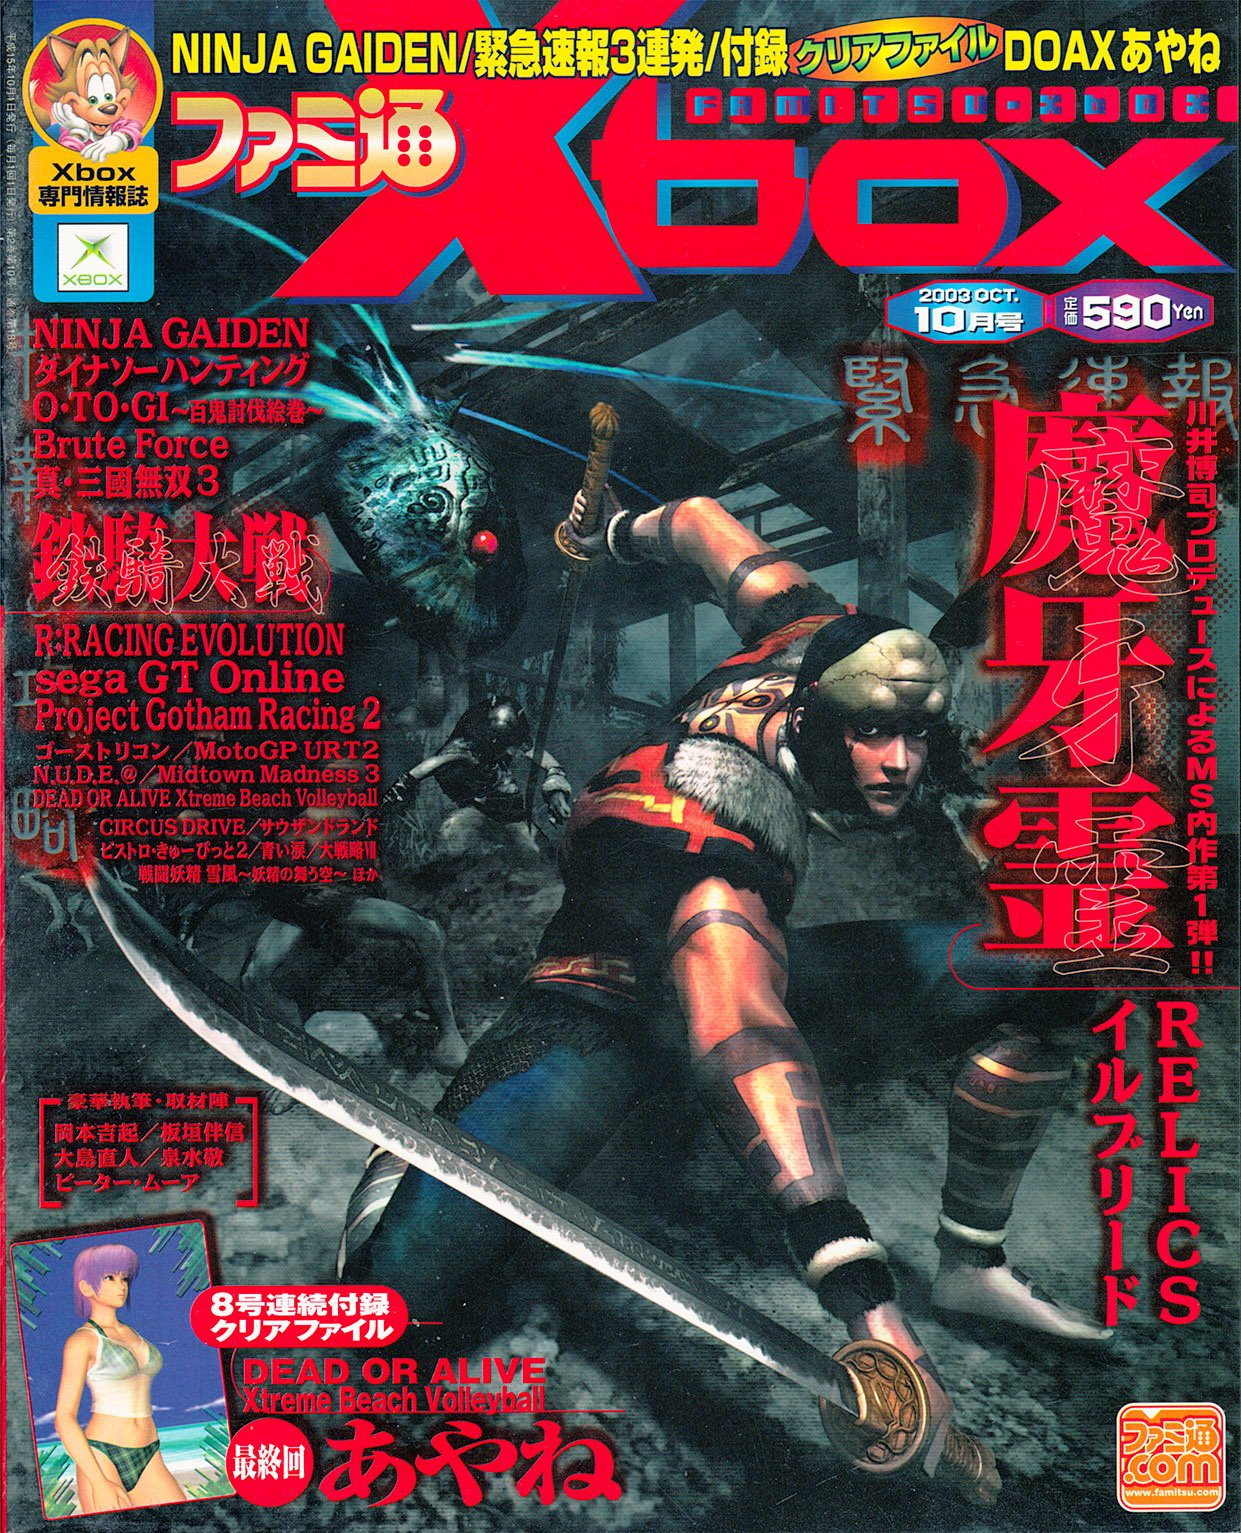 Famitsu Xbox Issue 020 (October 2003)